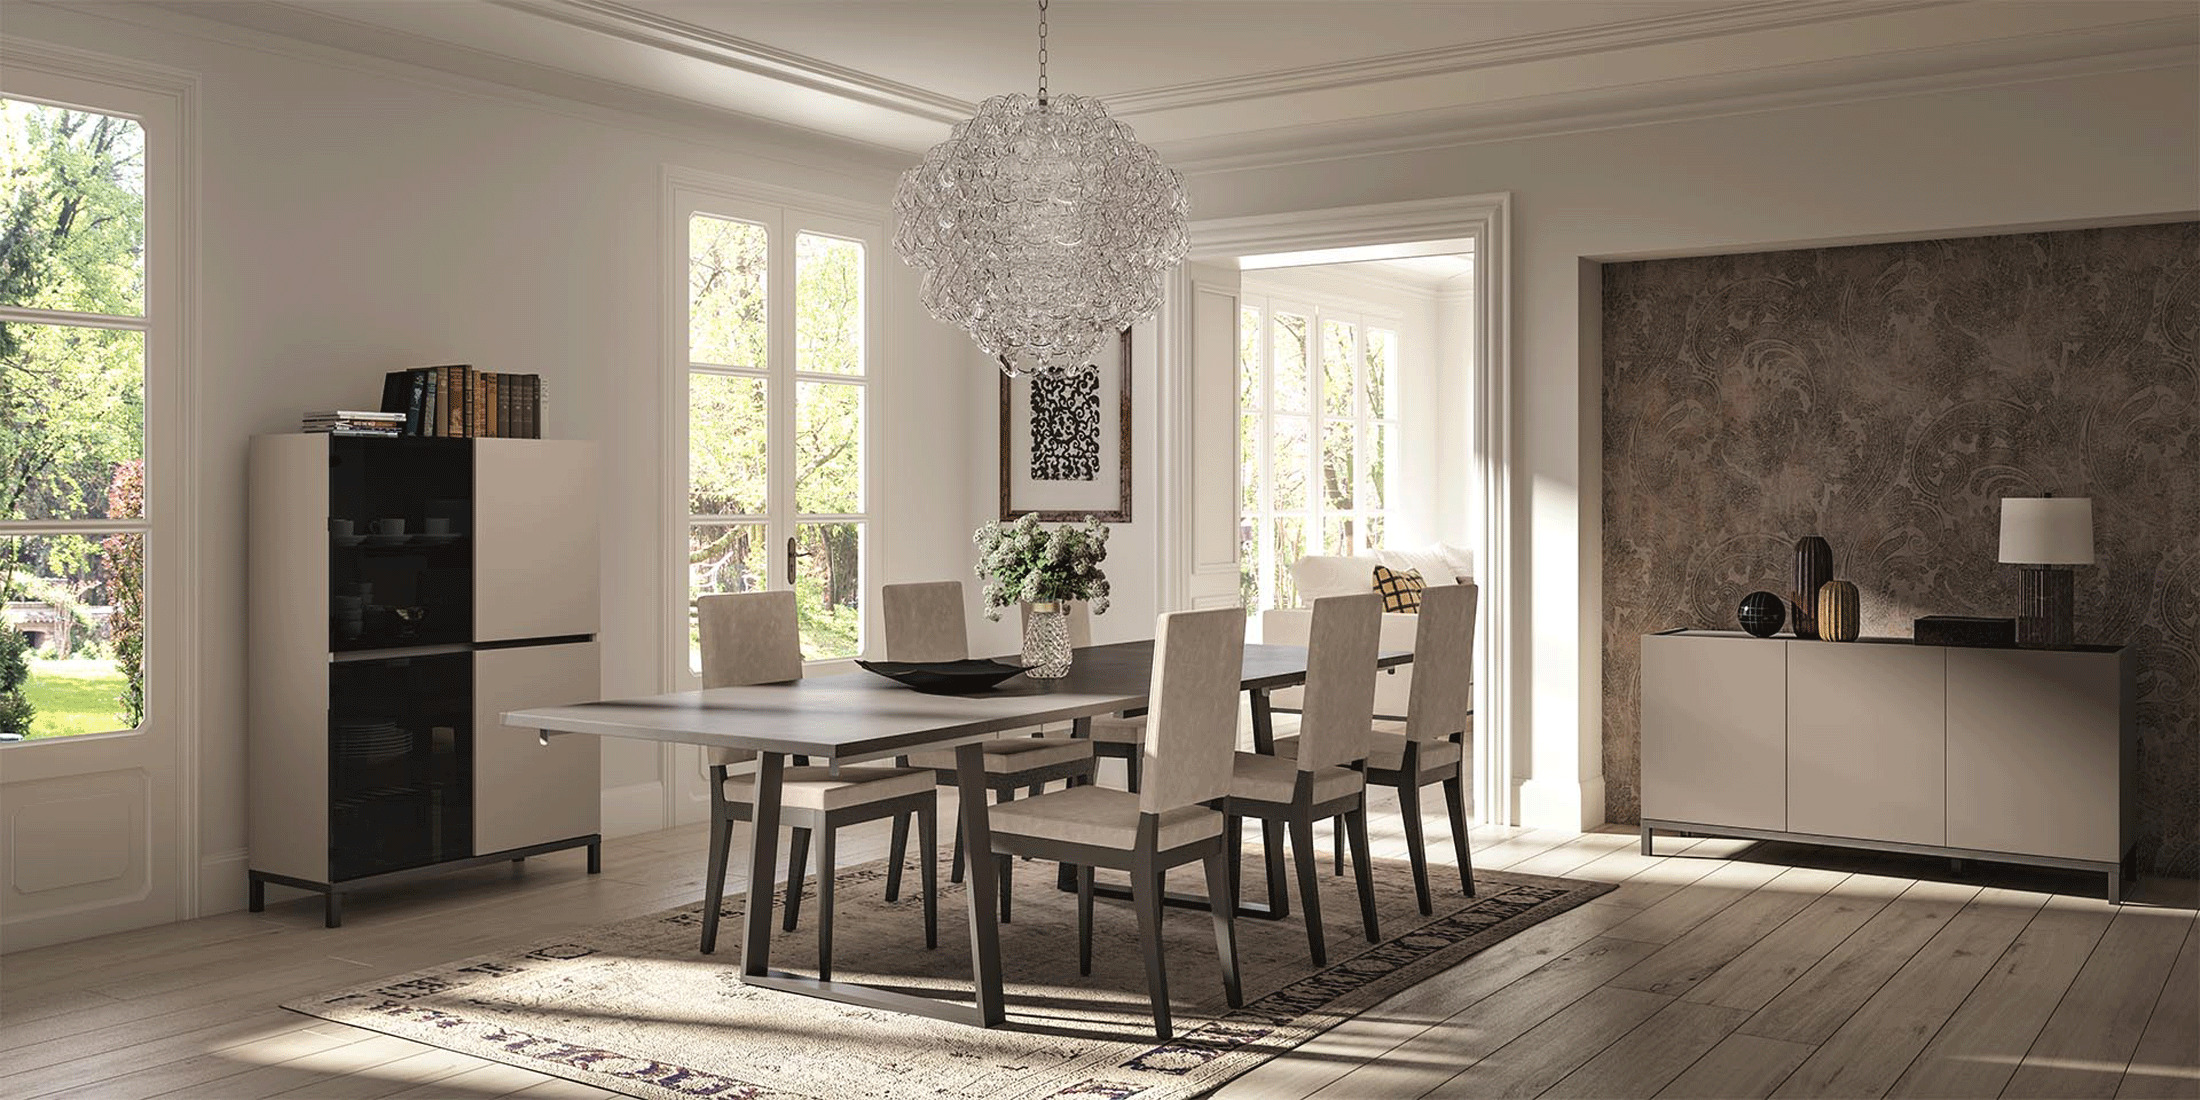 SKU 415288 Contemporary Style Leather Dining Room Design